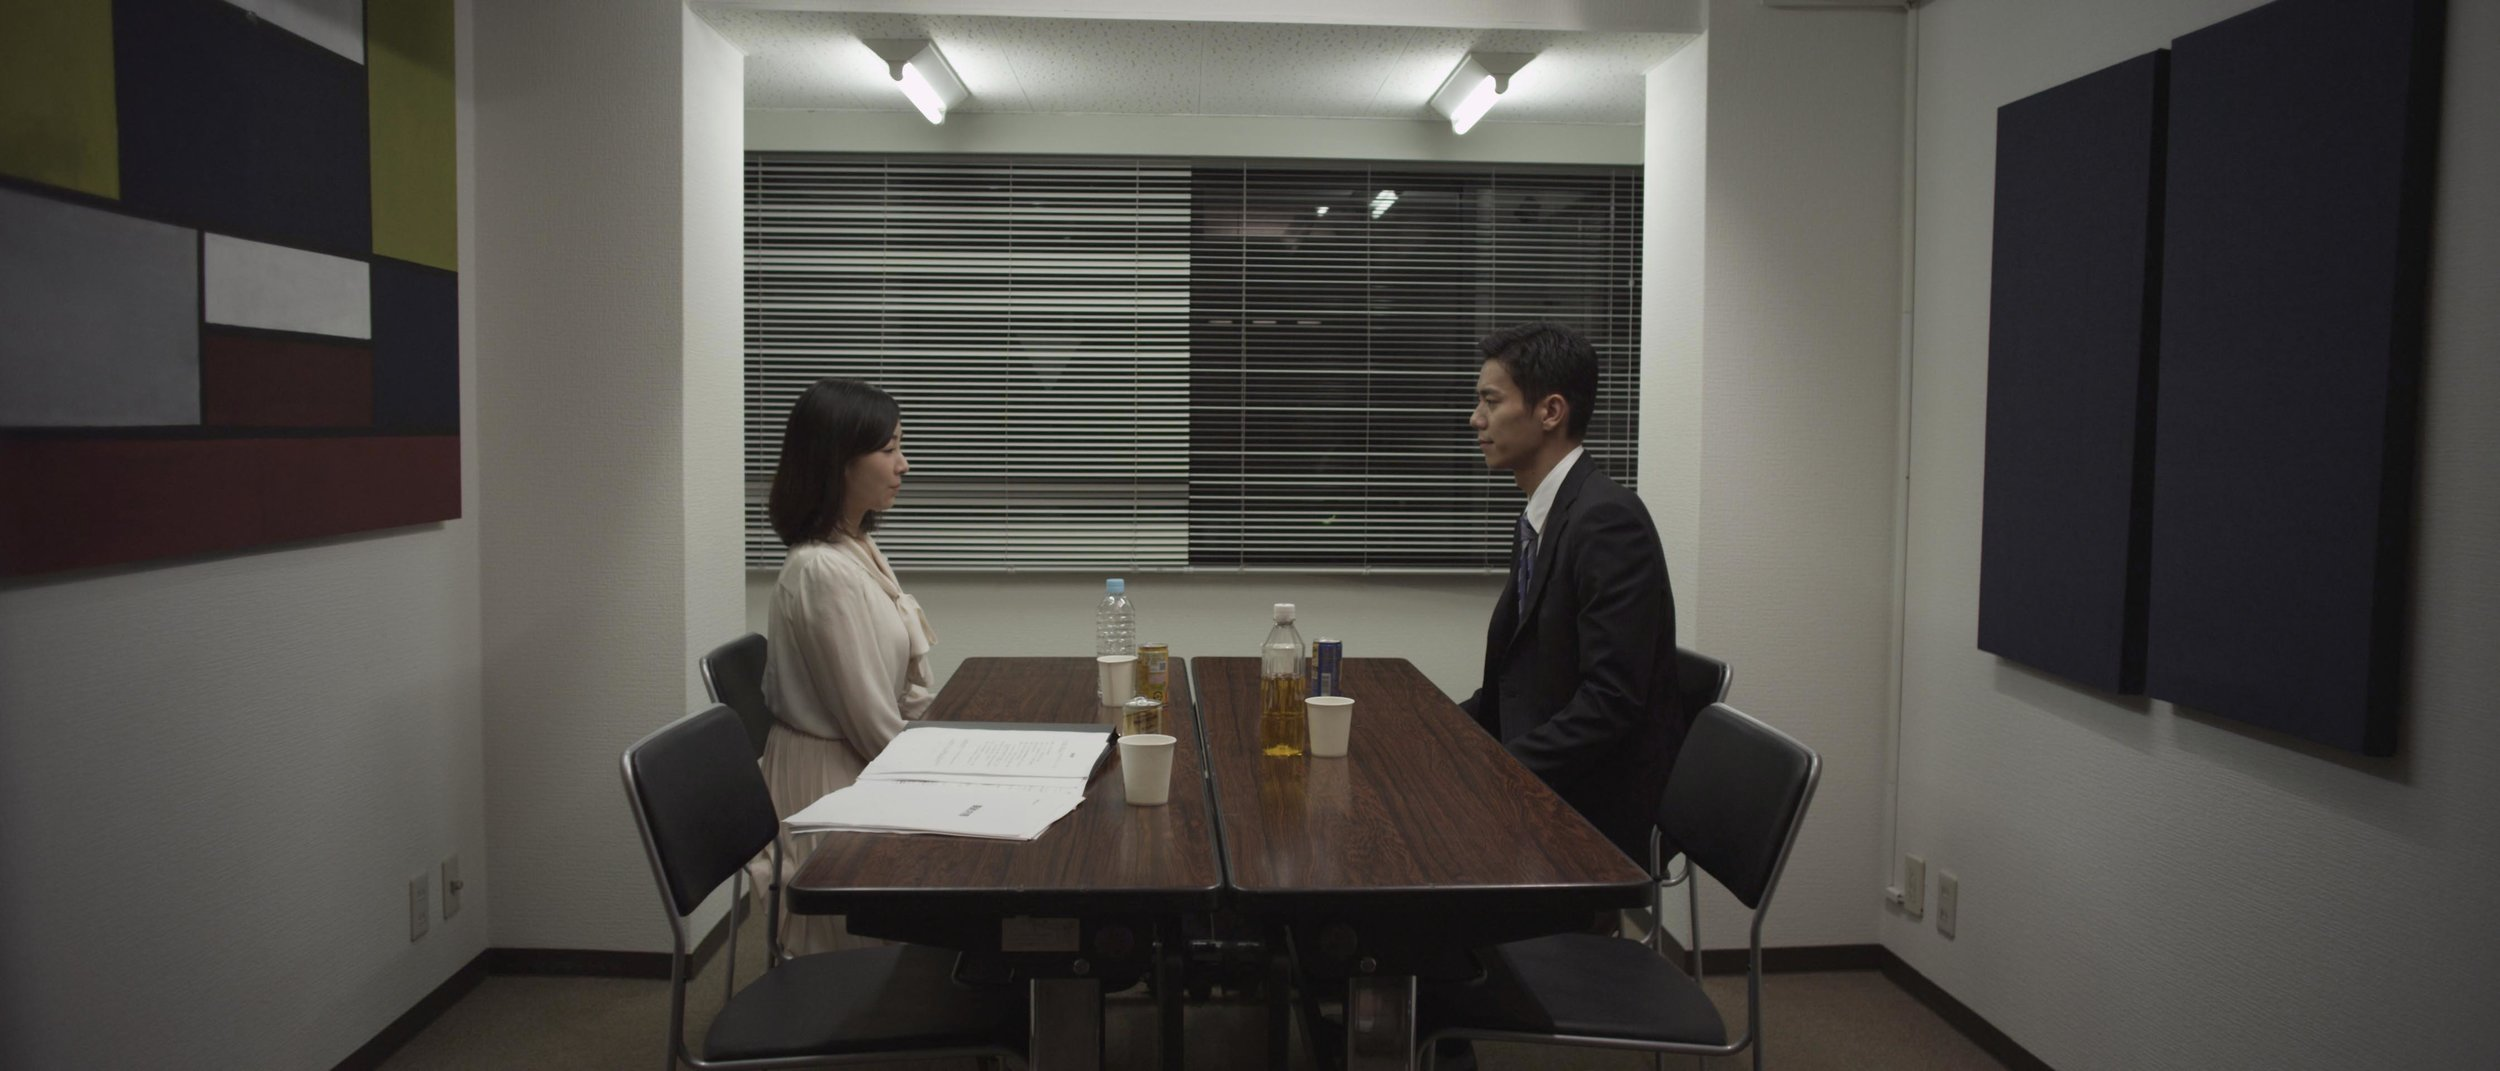 tokyo-japan-couple-office-film-dop-cinematographer